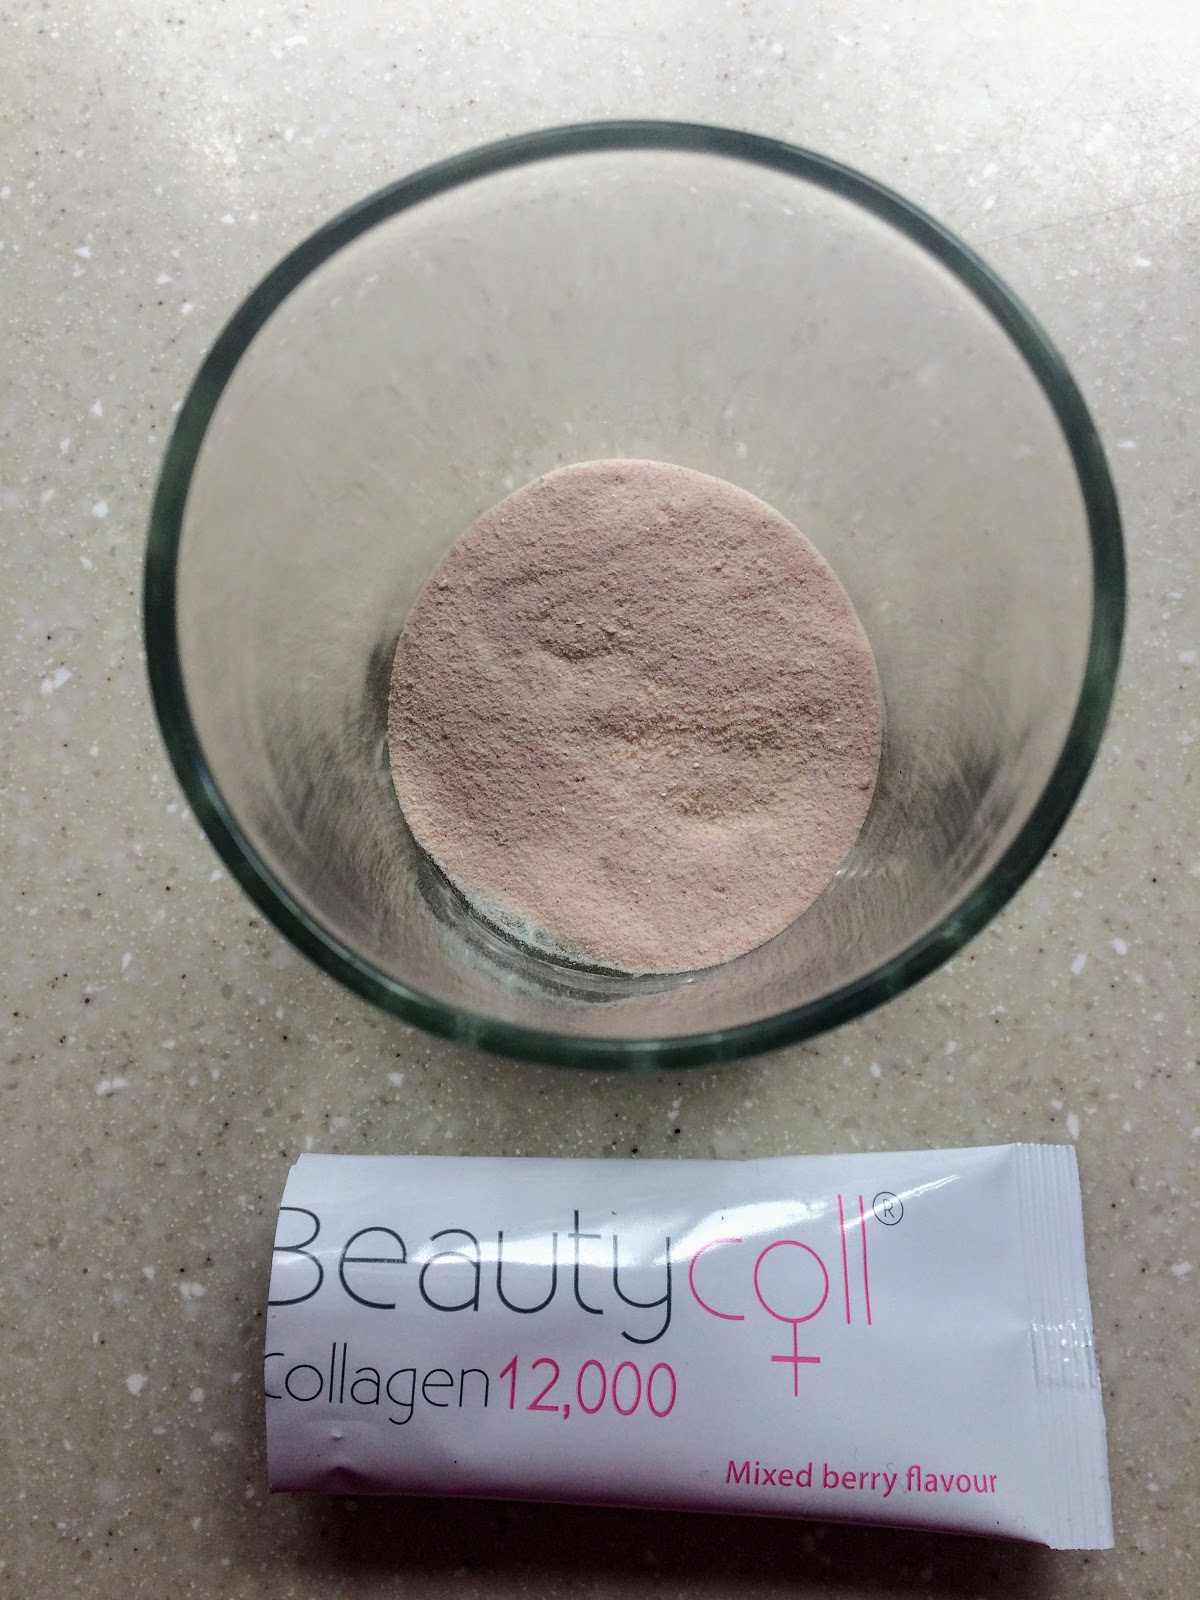 Beautycoll powder in glas pre mixing